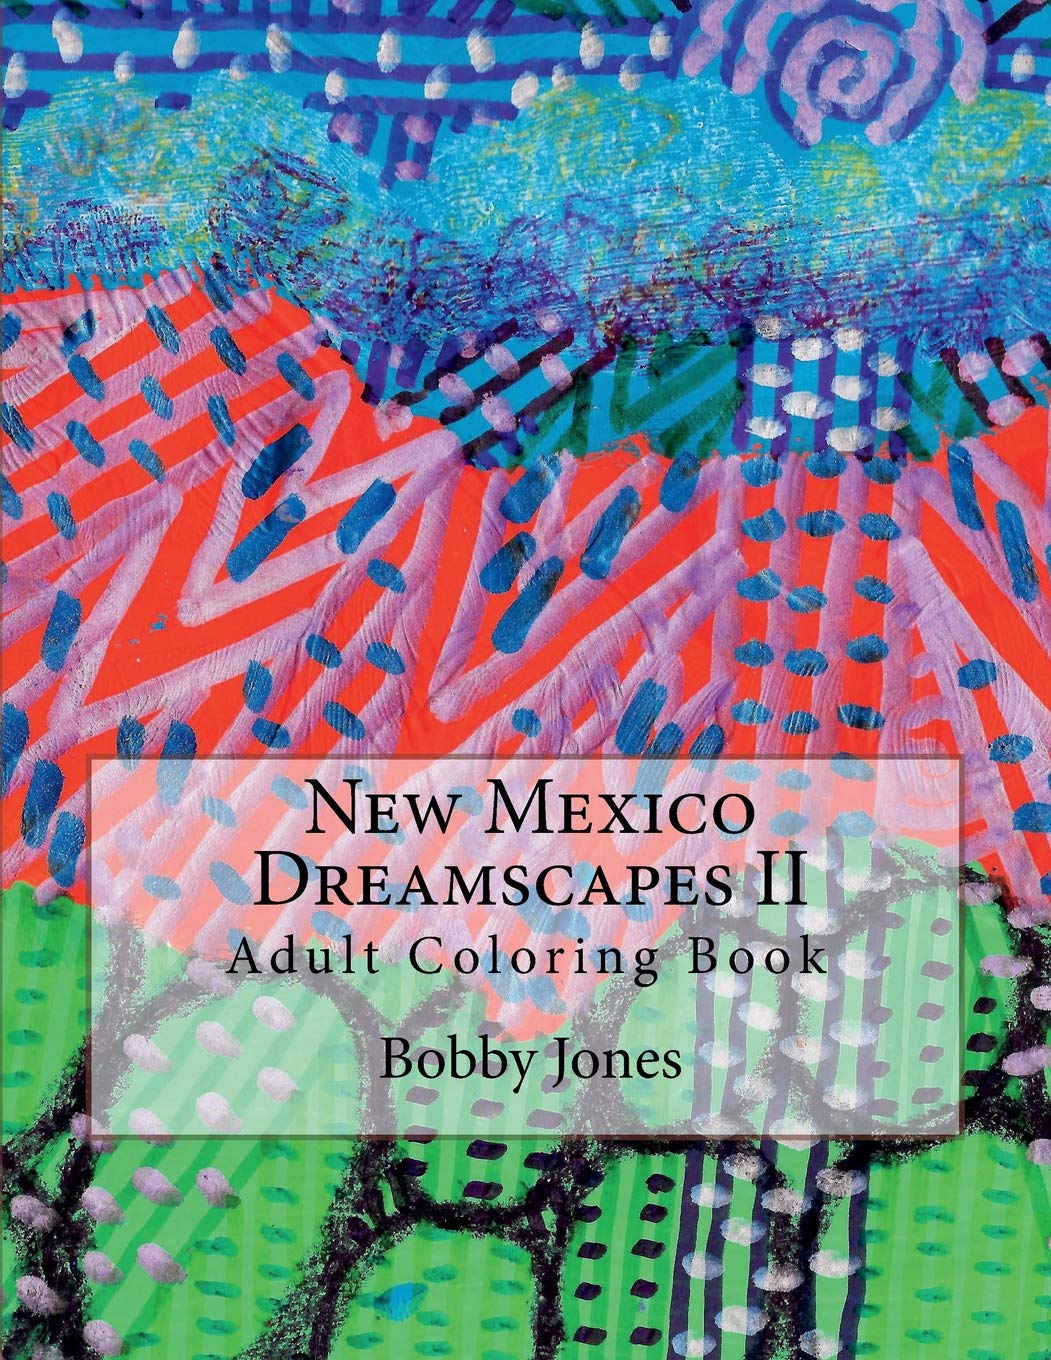 New Mexico Dreamscapes II: Adult Coloring Book (Volume 2) PDF